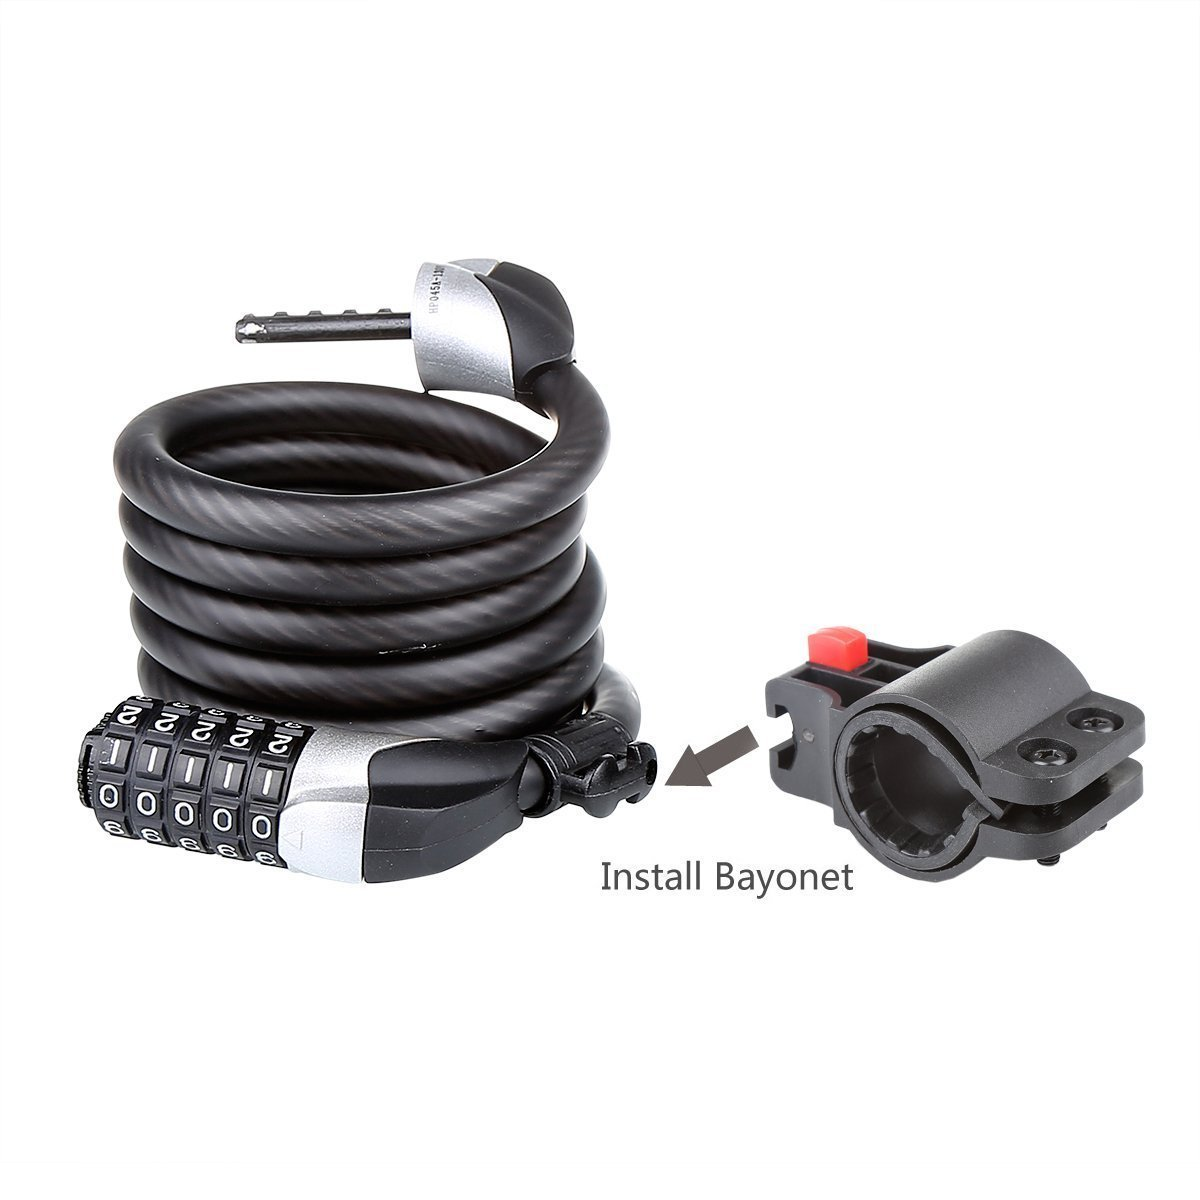 Blusmart Bike Security Cable Lock Combination with Flexible Mount Twisted Met...